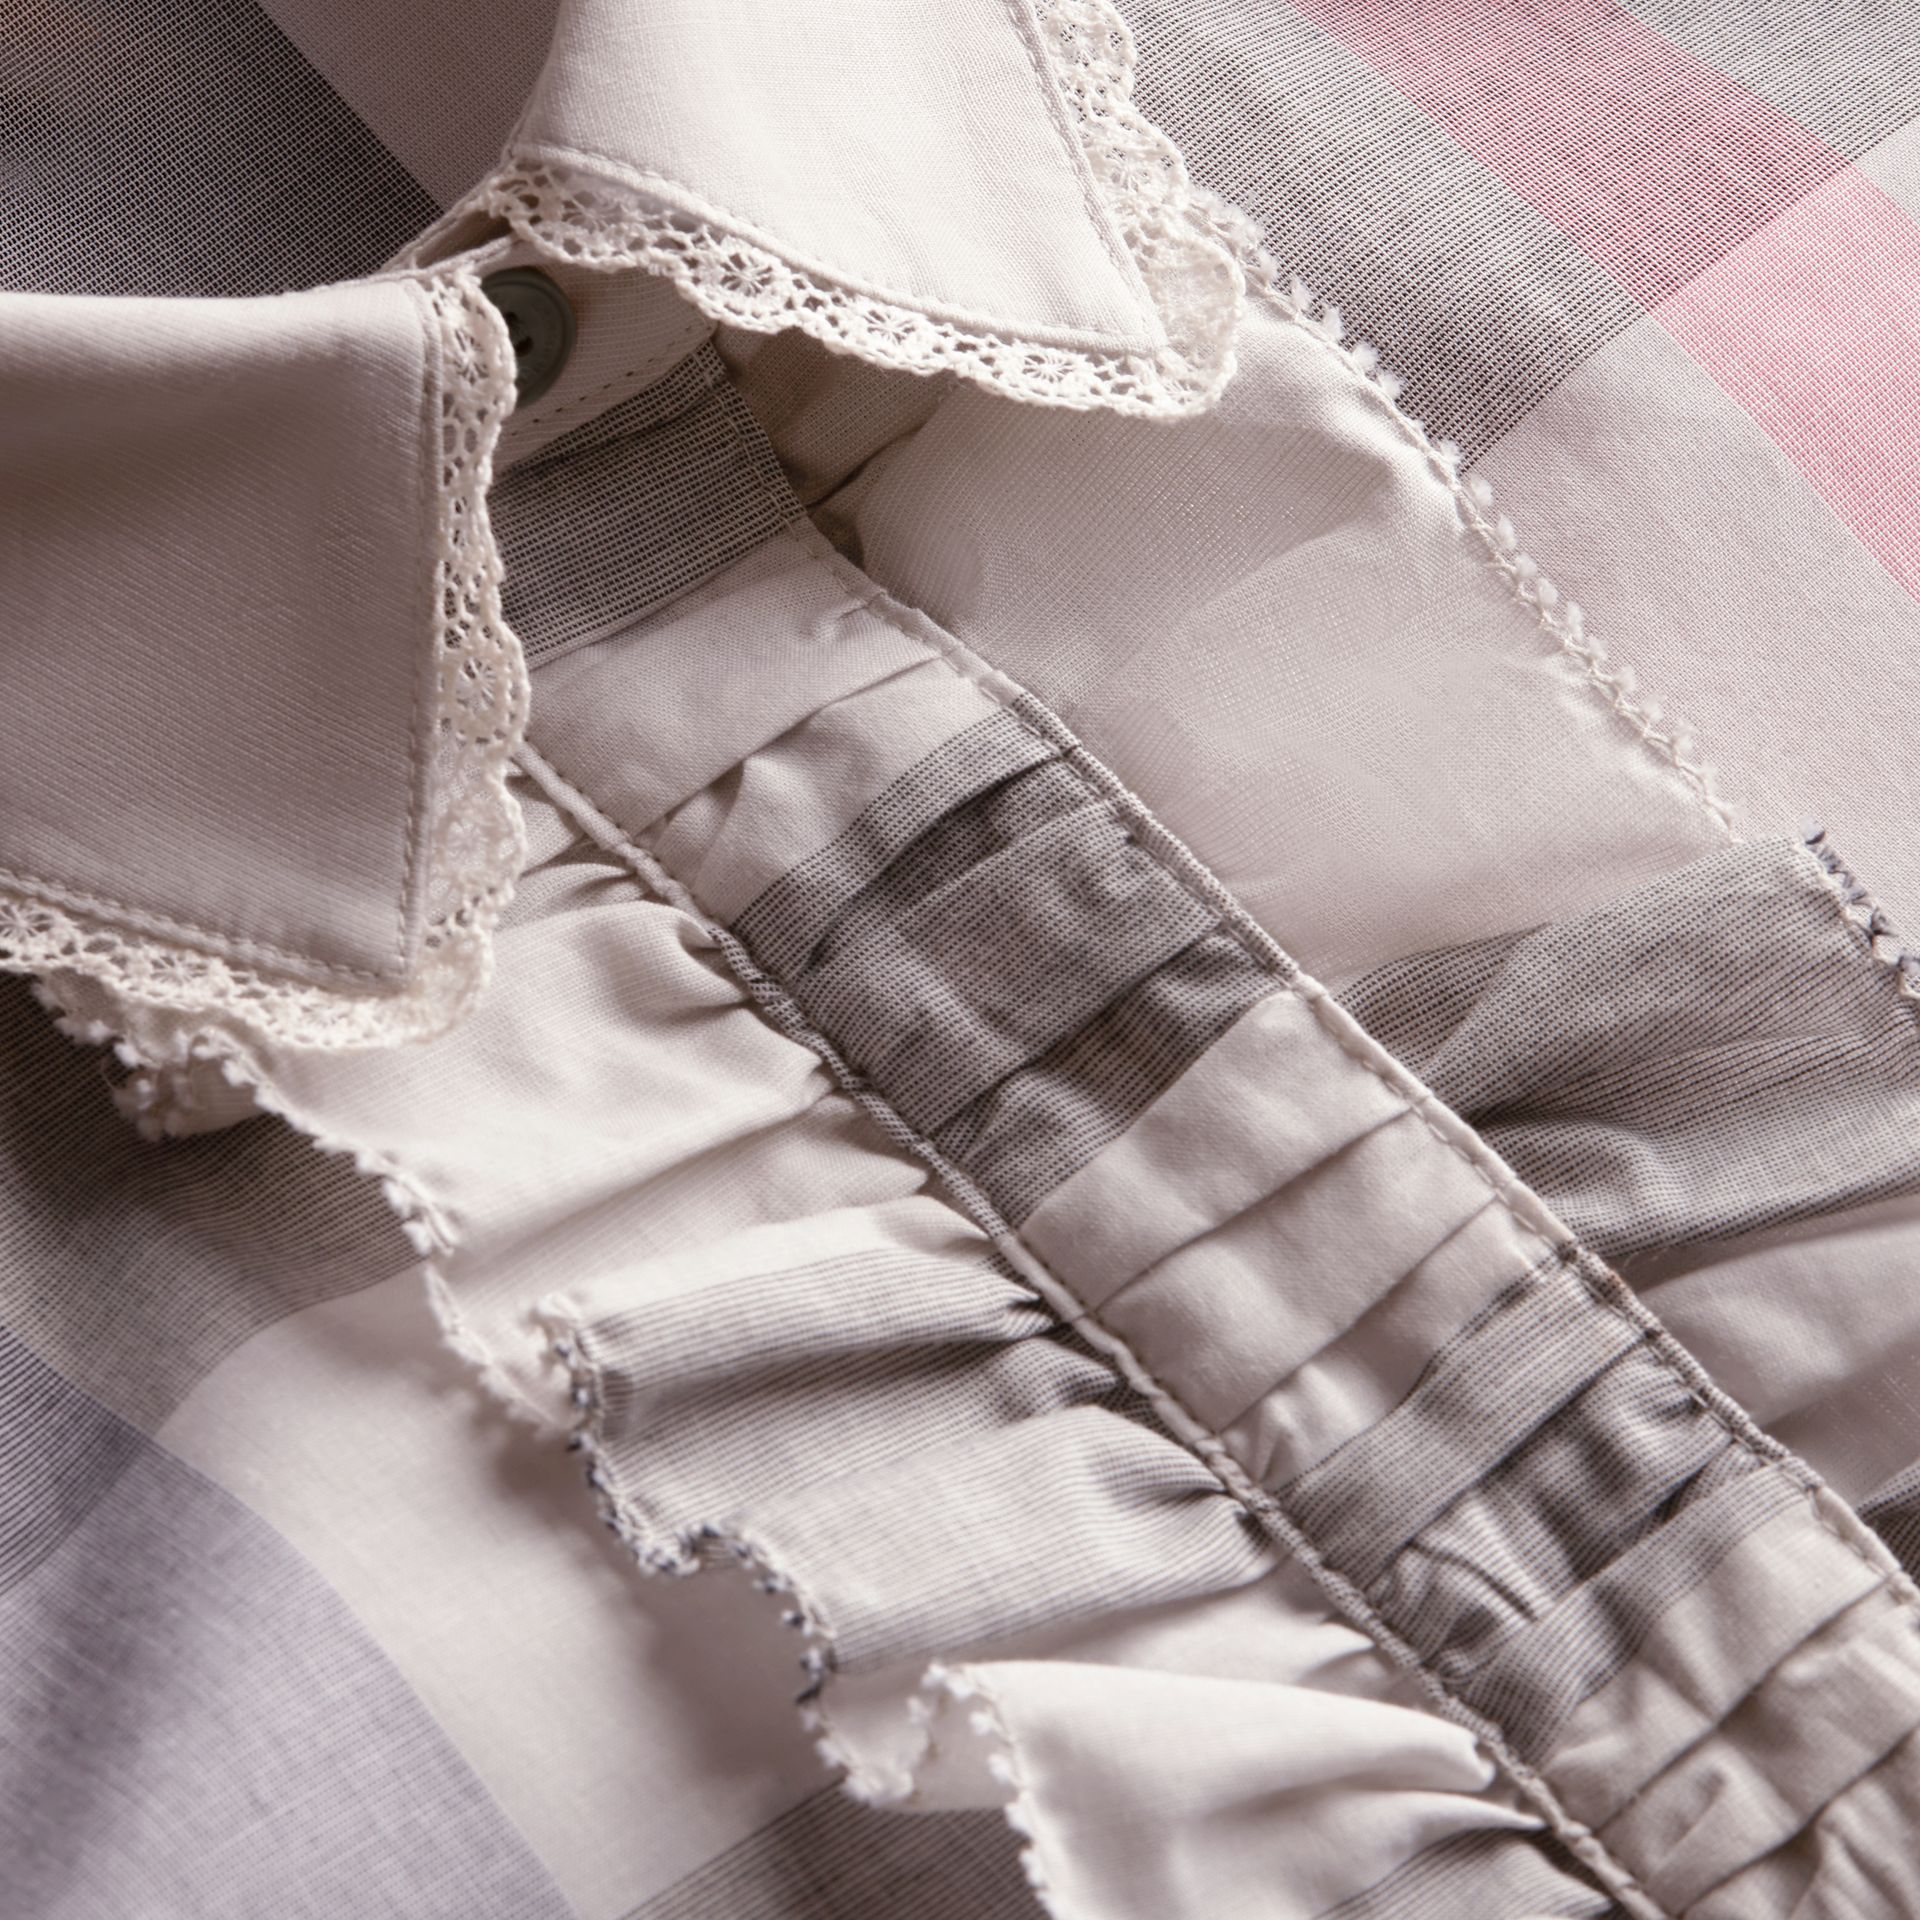 Ruffle Detail and Lace Trim Check Cotton Shirt in Pale Taupe - Women | Burberry - gallery image 2